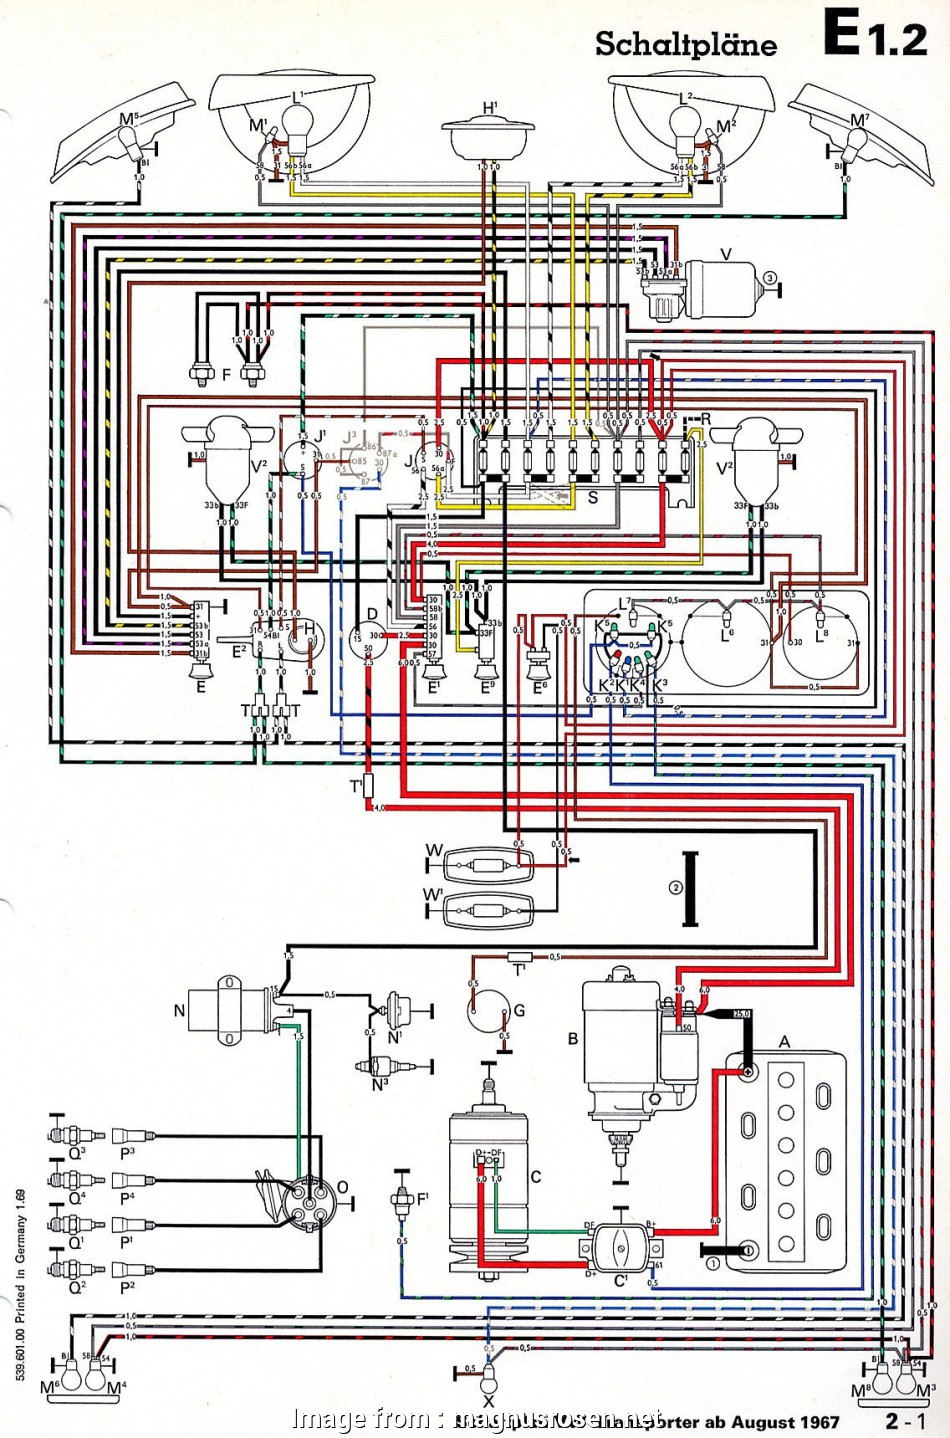 electrical wiring diagram vw-t4 Wiring Diagram Vw T4 Fresh Vw Transporter Electrical Wiring Diagram Electrical Wiring Diagram Vw-T4 New Wiring Diagram Vw T4 Fresh Vw Transporter Electrical Wiring Diagram Photos